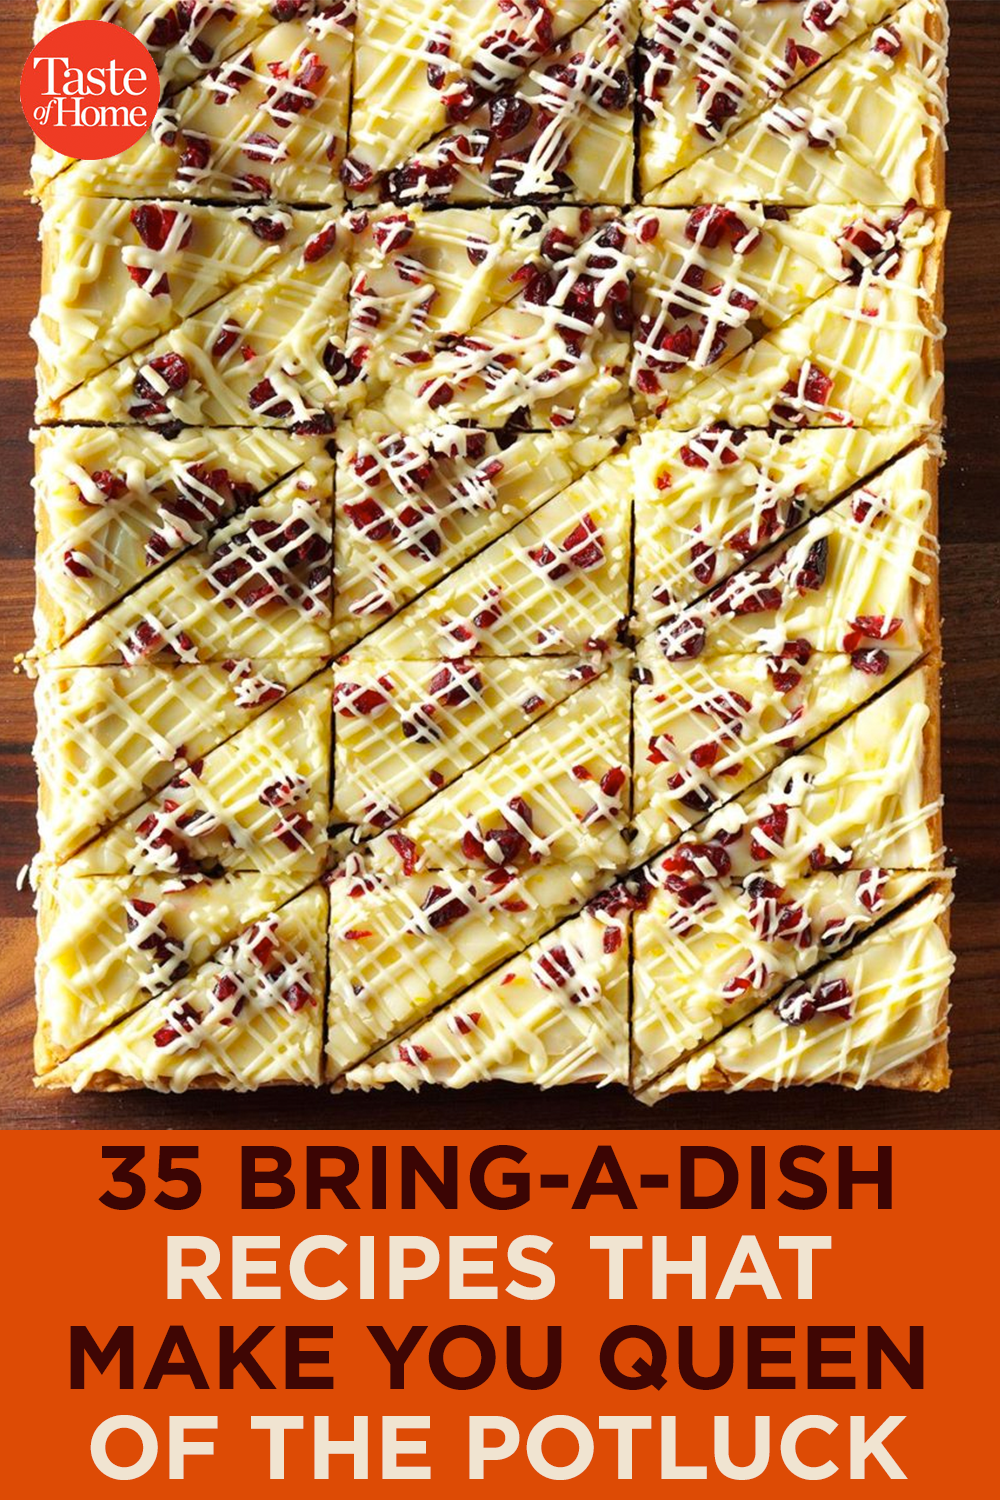 35 Bring-a-Dish Recipes That Make You Queen of the Potluck